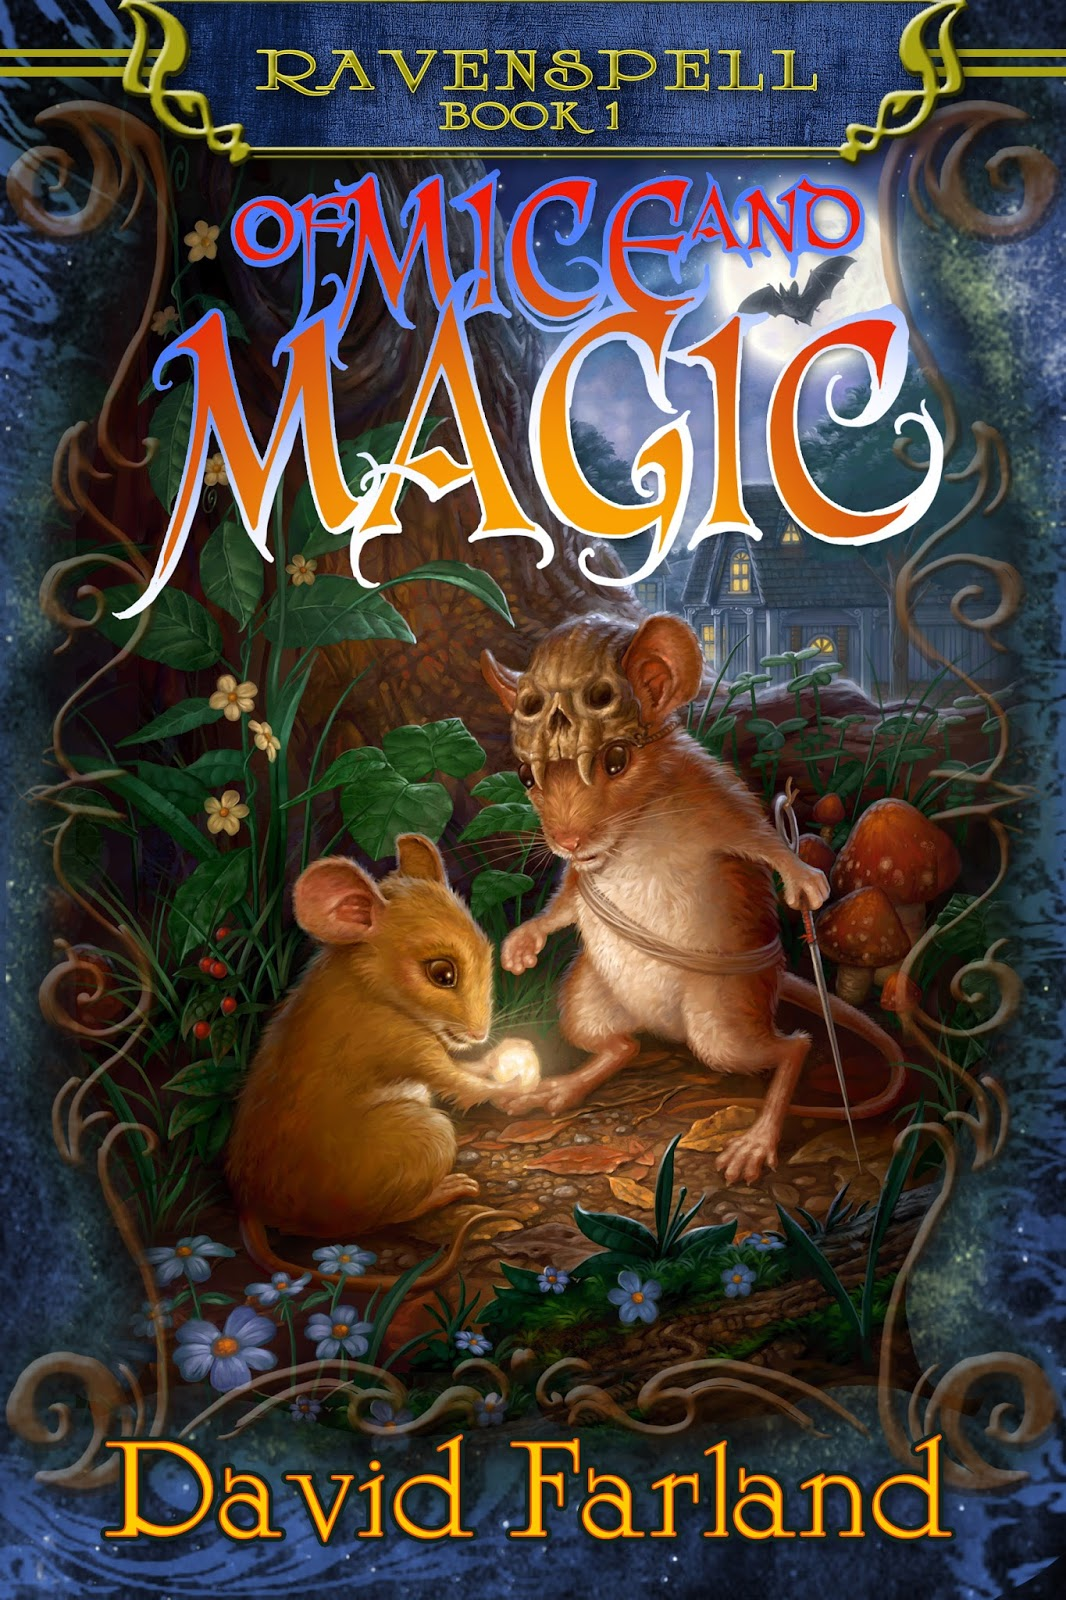 Kindle * Nook * Kobomore Than Anything, Benjamin Ravenspell Wants A Pet,  But When He Buys A Mouse Named Amber, He Gets More Than He Bargained For